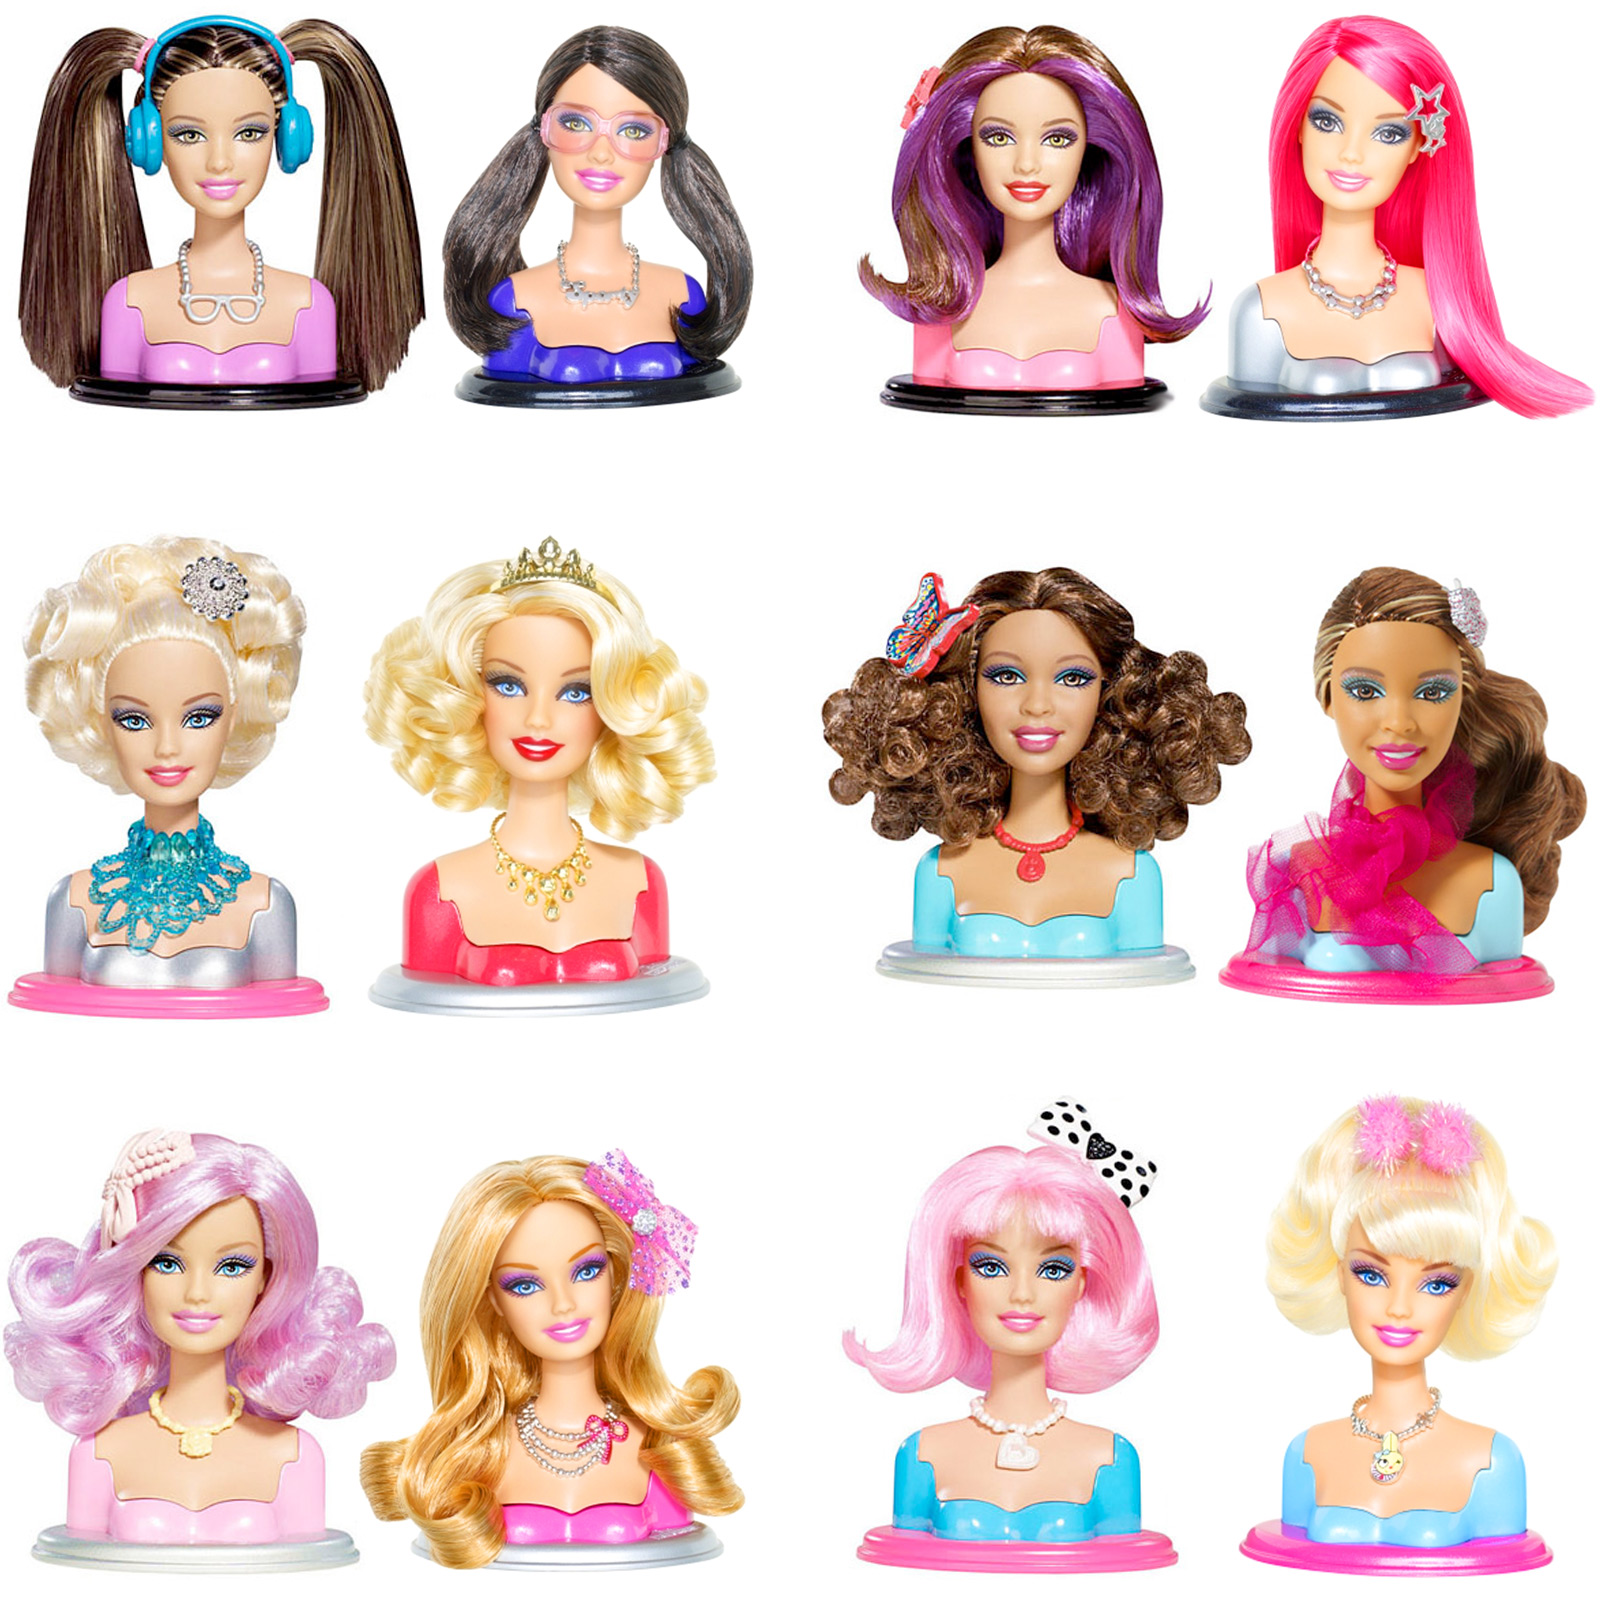 Barbie fashionistas swappin styles heads 61